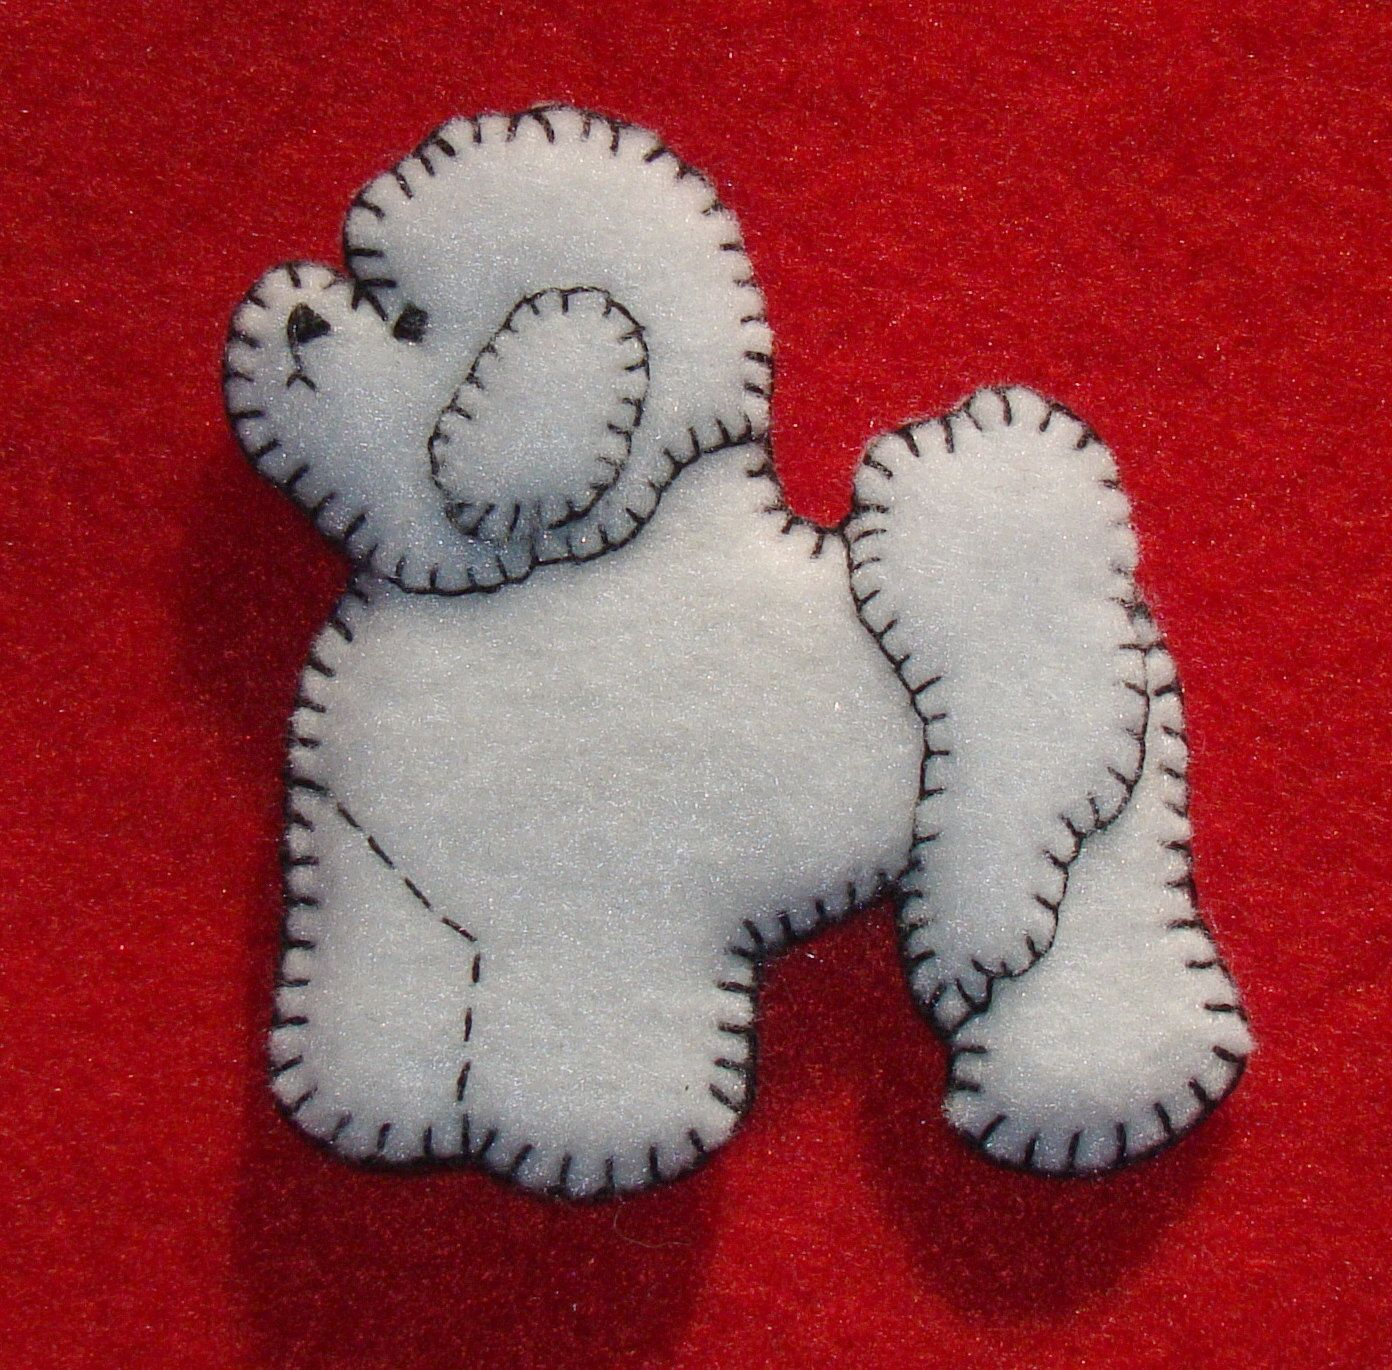 Handmade christmas ornaments on etsy - Bichon Frise Refrigerator Magnet Christmas Ornament Handmade Original Felt Design 15 00 Via